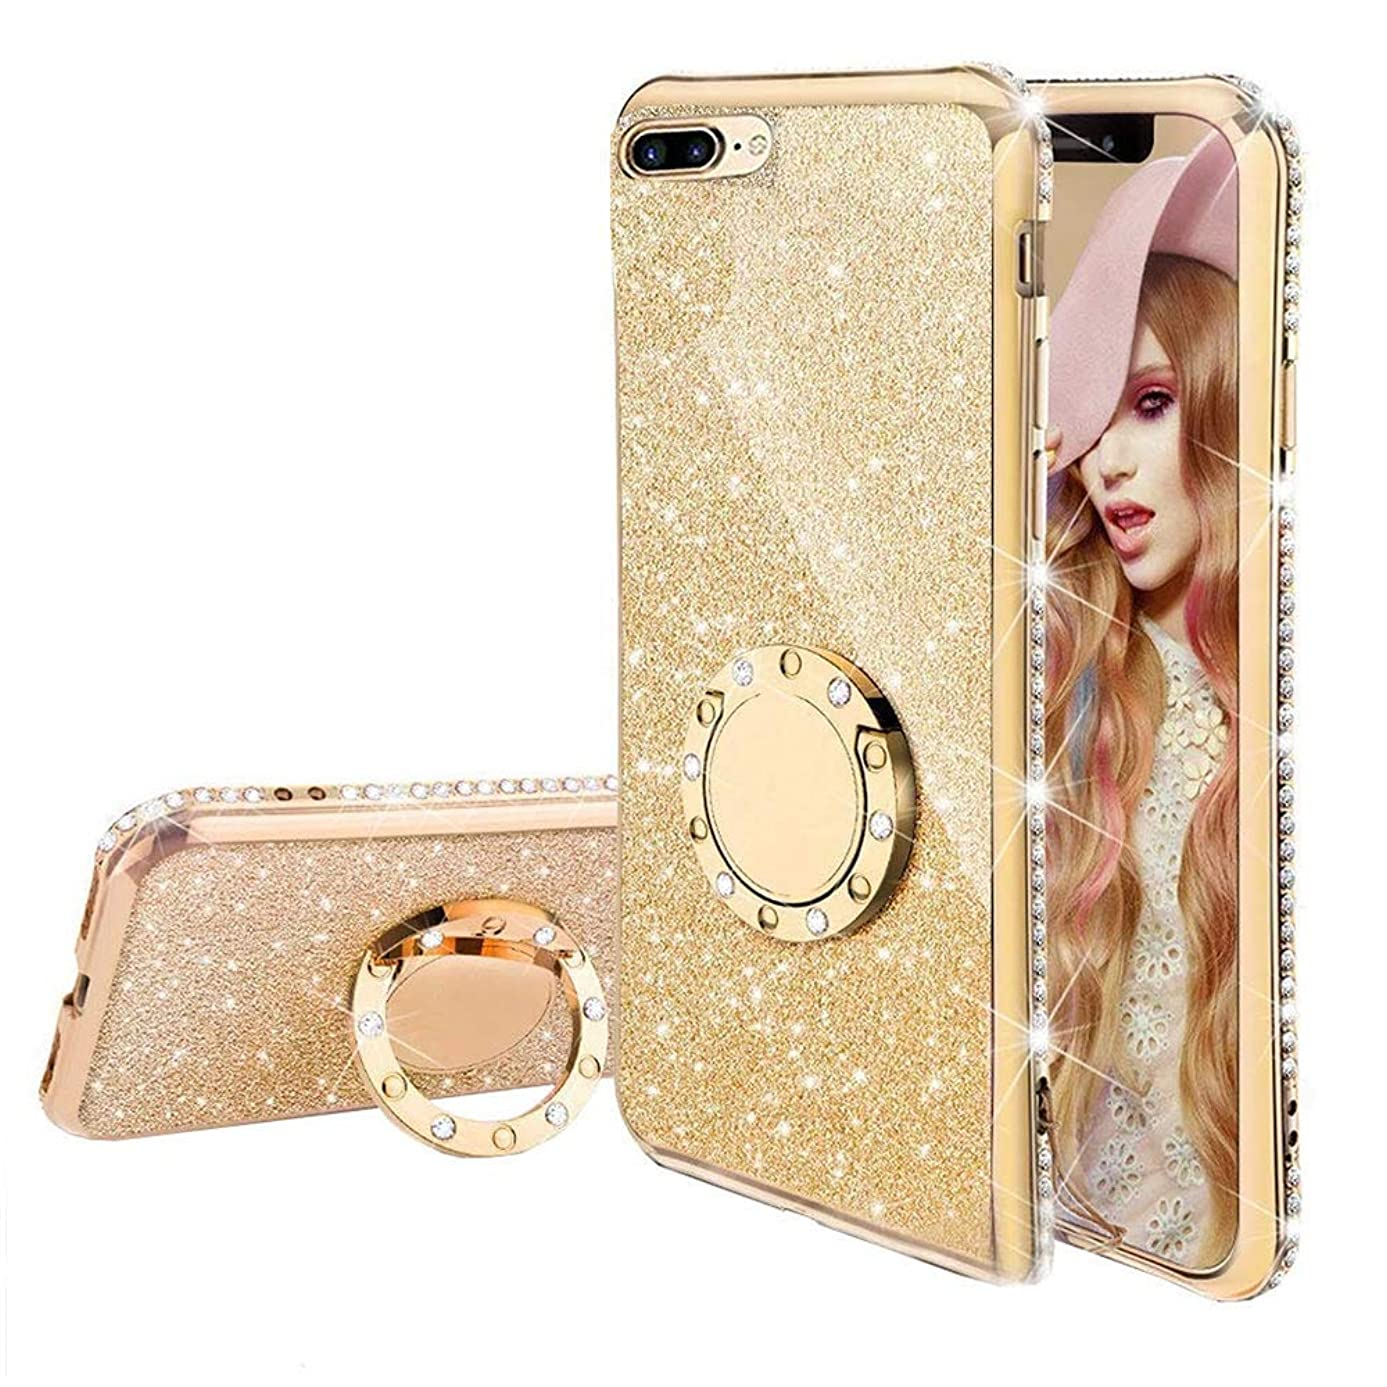 Miagon Bling Case for iPhone SE 5S 5,Shiny Sparkle Electroplated Diamond Frame Glitter Skin 360 Degree Ring Stand Silicone Bumper Protective Case Cover for iPhone SE 5S 5